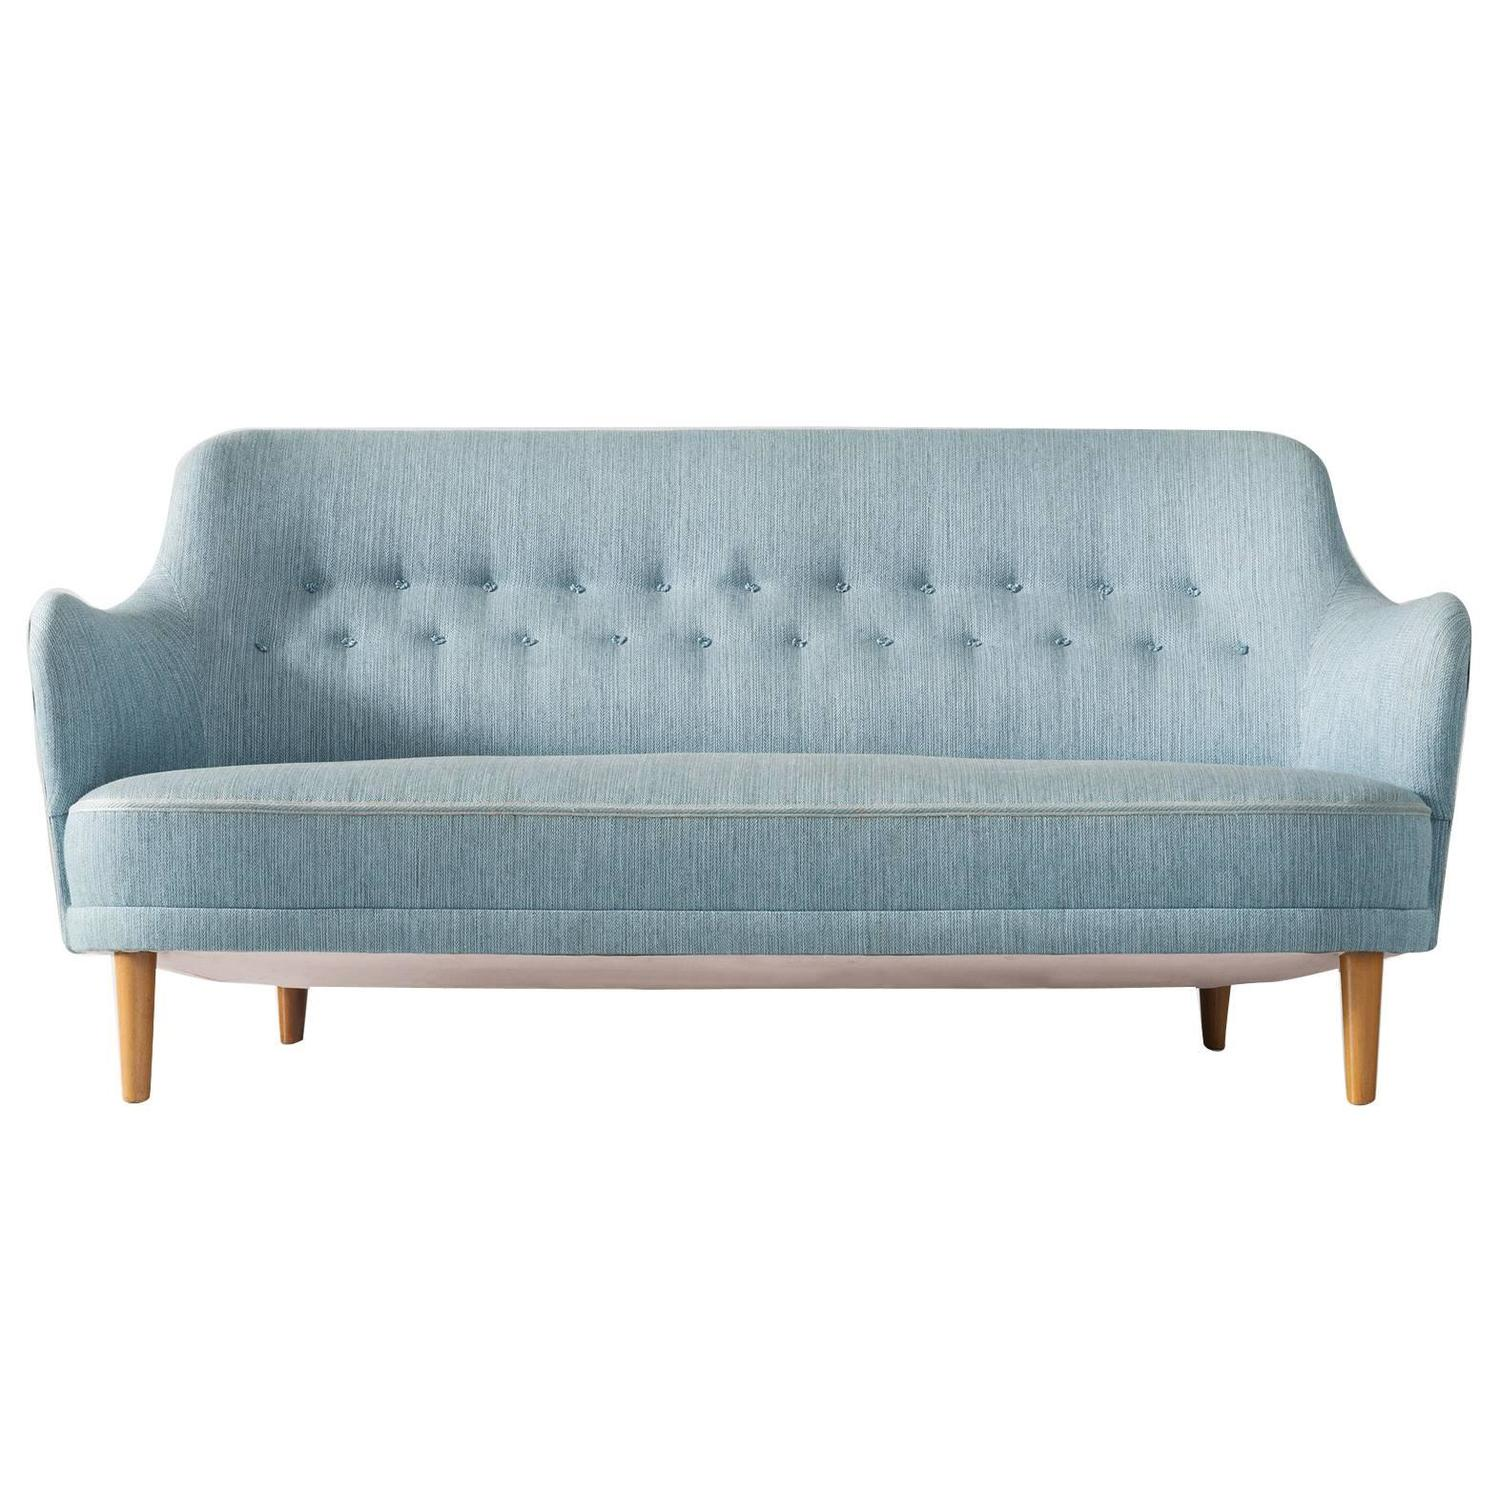 Tailor Lounge Sofa by Rui Alves in Natural Oak with Fabric or